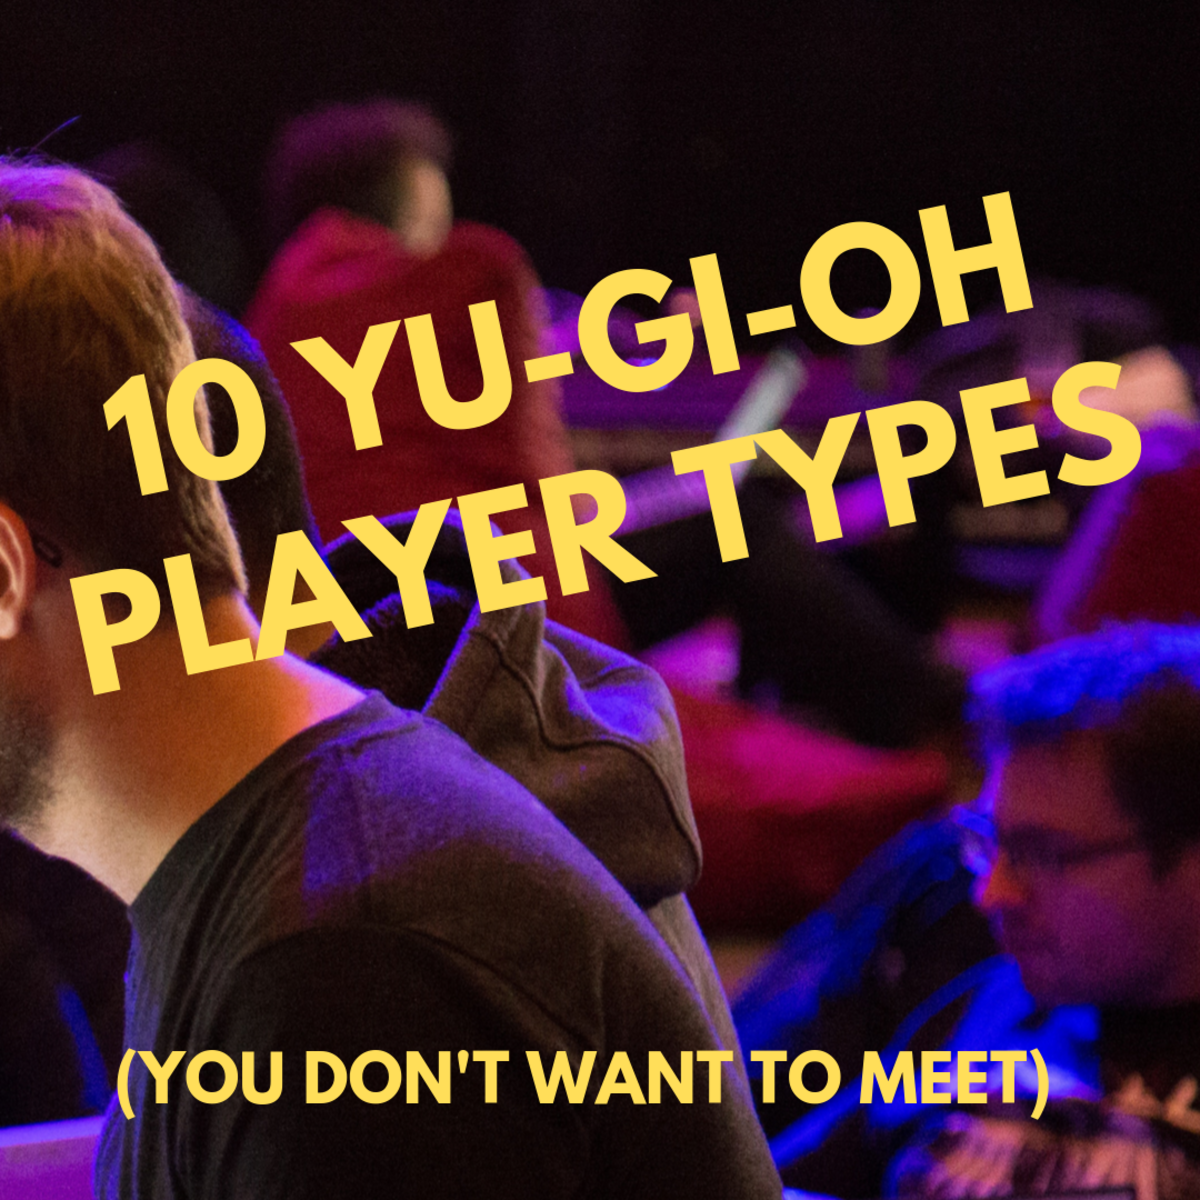 10 Yu-Gi-Oh Player Types You Just Don't Want to Meet